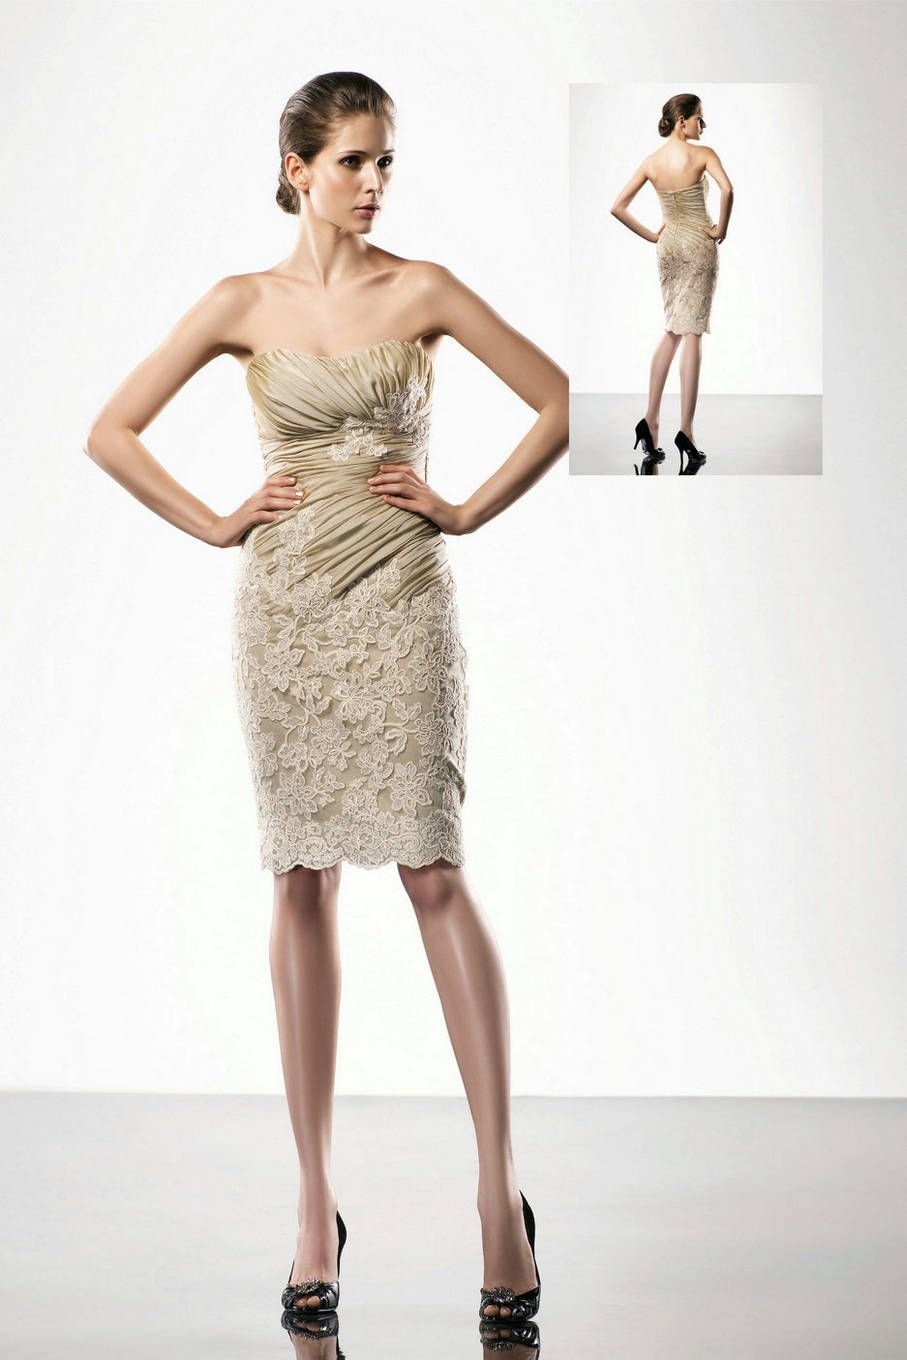 Cool designer cocktail dress sale contemporary wedding dress ideas ruched lace appliques handmade embroidery brown strapless designer ombrellifo Images